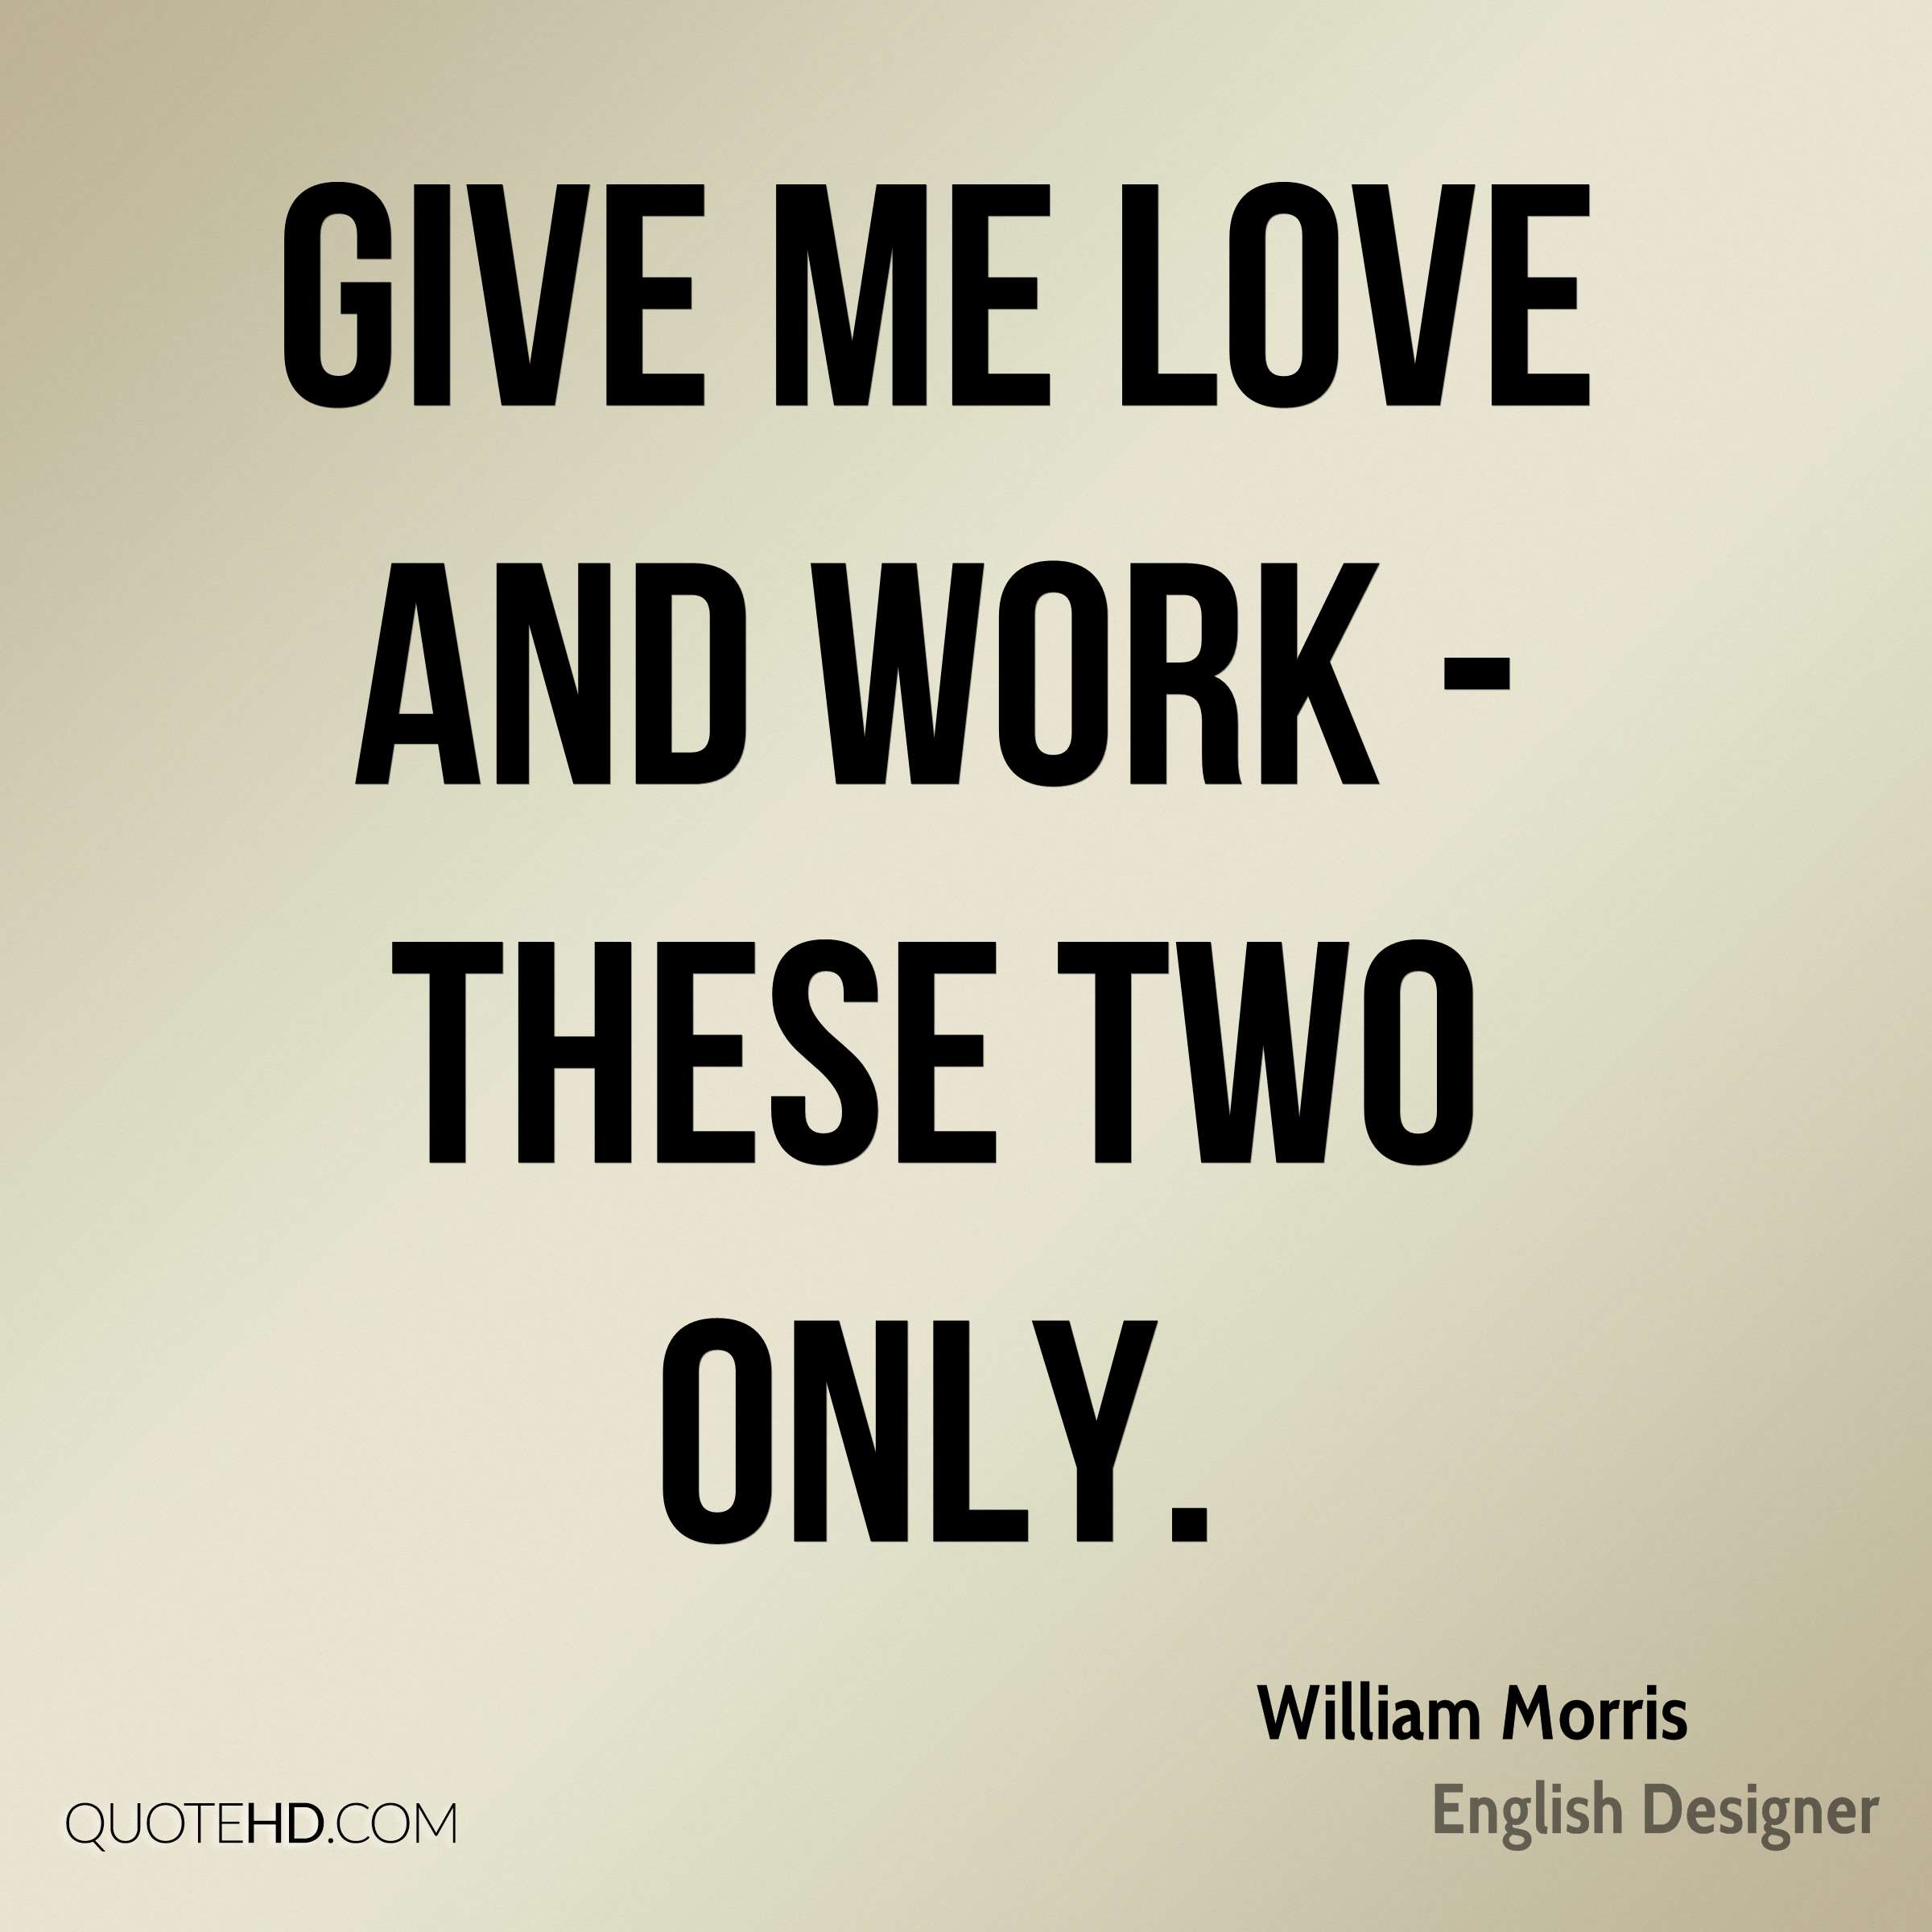 Give me love and work - these two only.